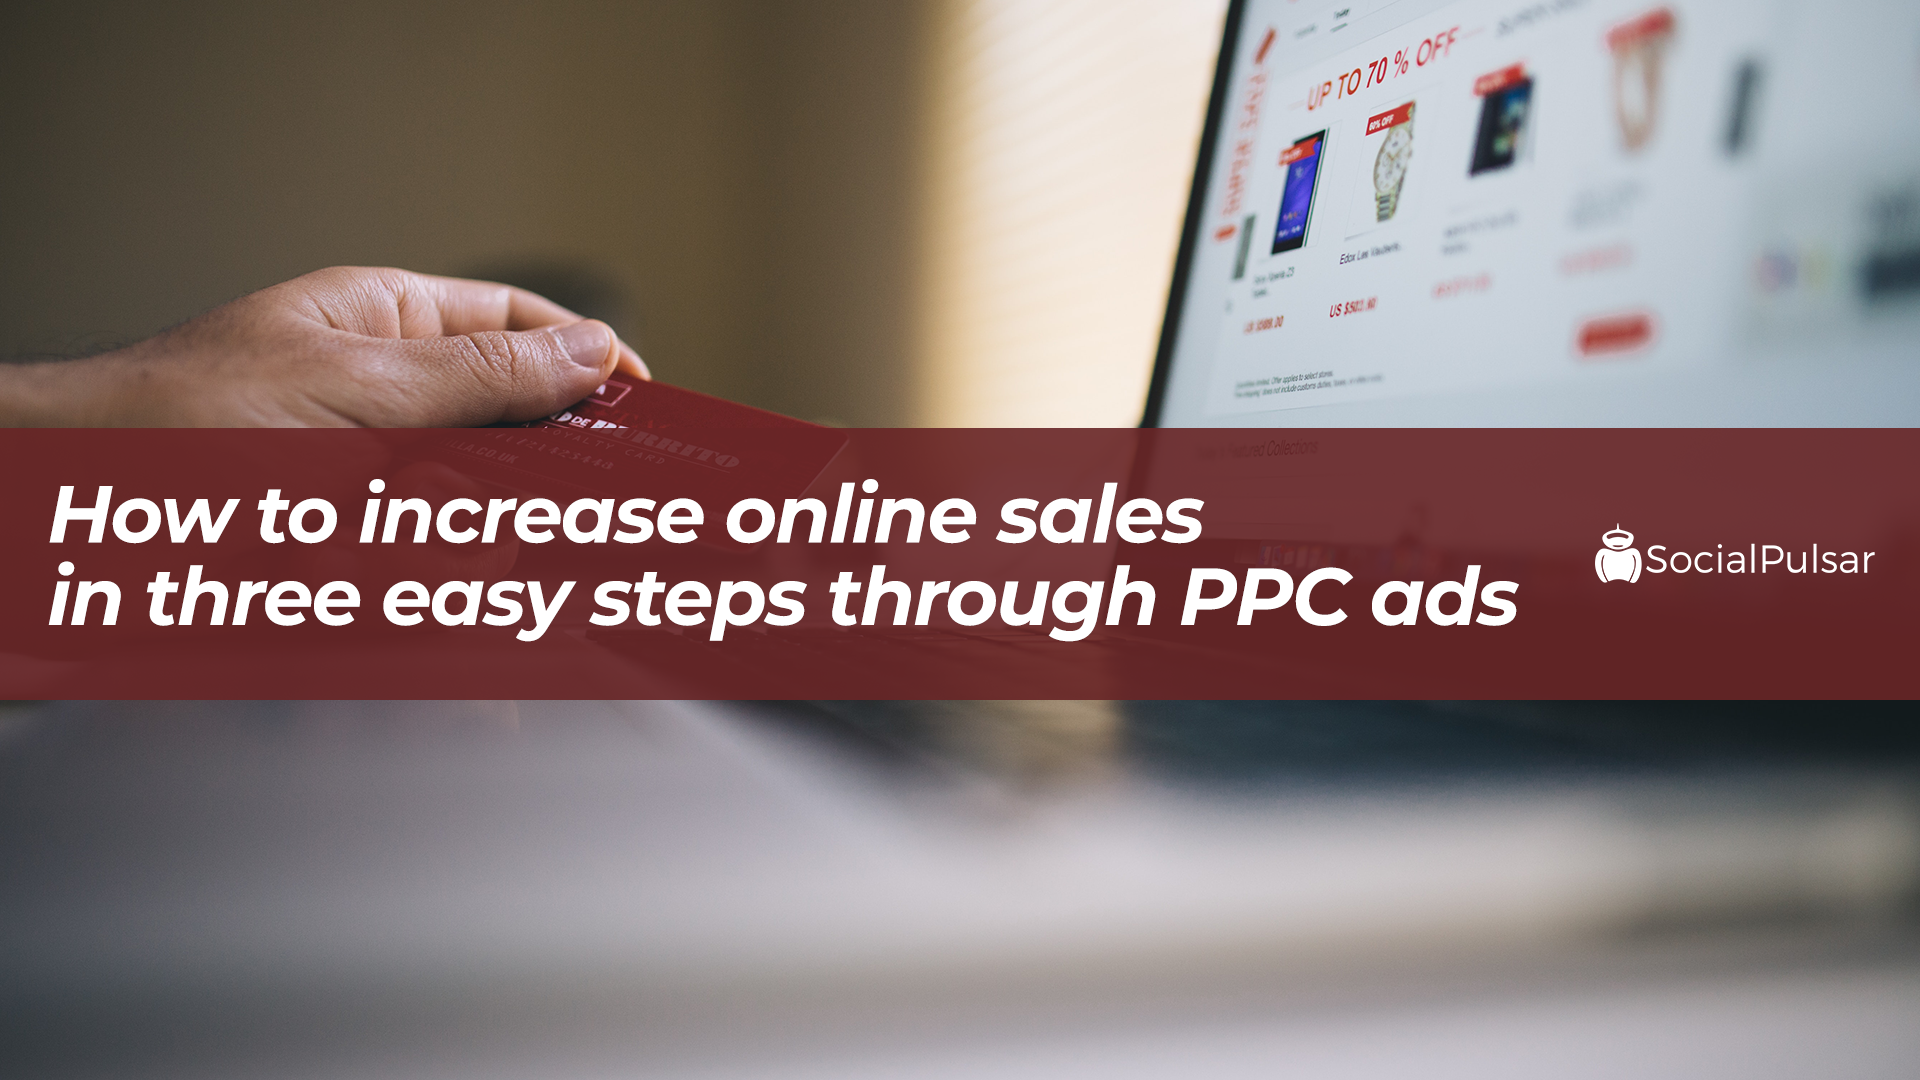 Increase Online Sales Through PPC Ads